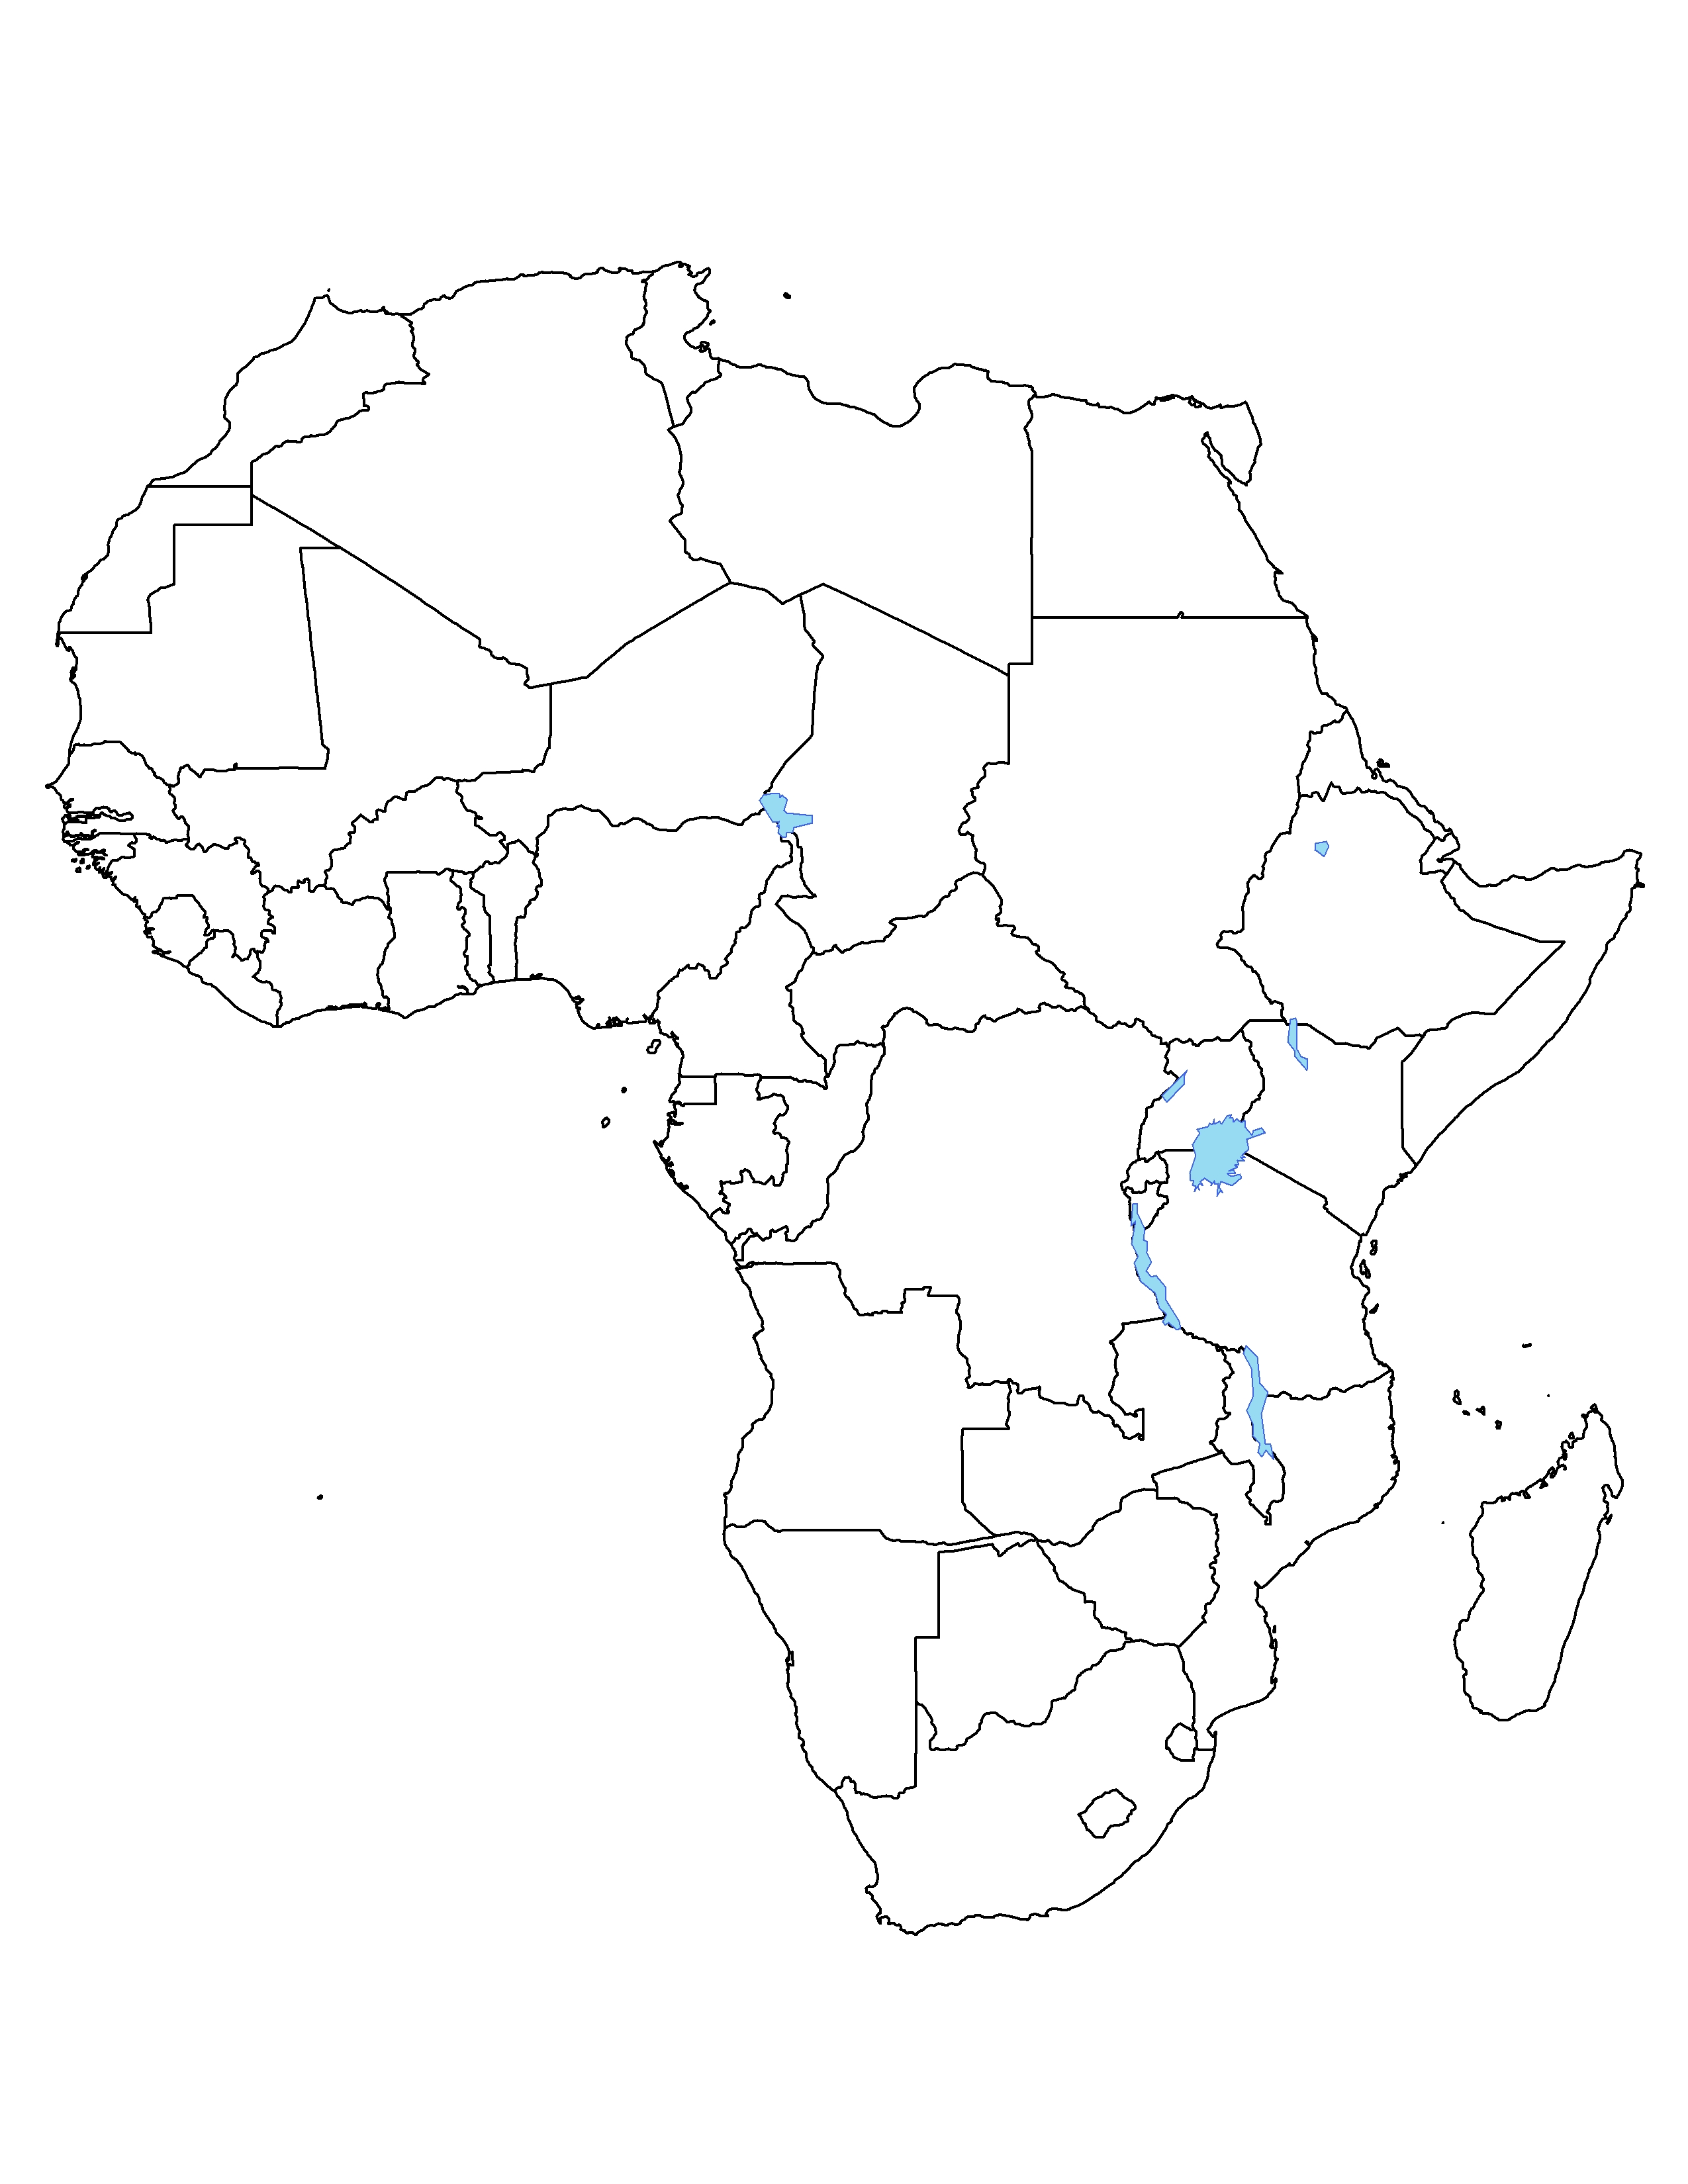 Outline Map Africa And Asia